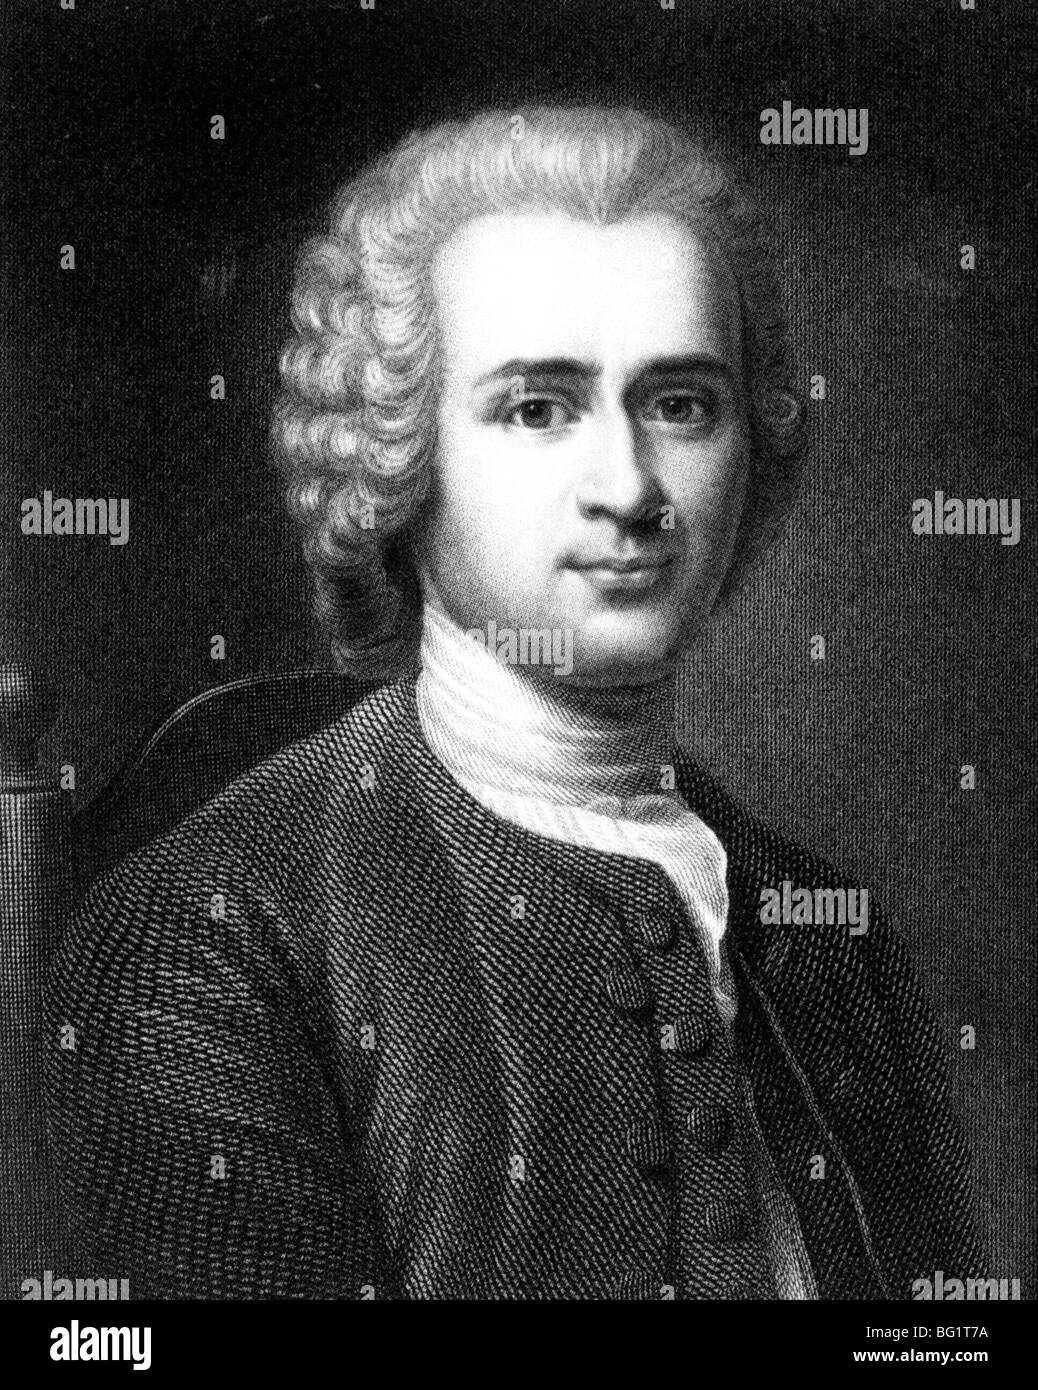 JEAN JACQUES ROUSSEAU - French political philosopher and  educationalist  (1712-78) - Stock Image